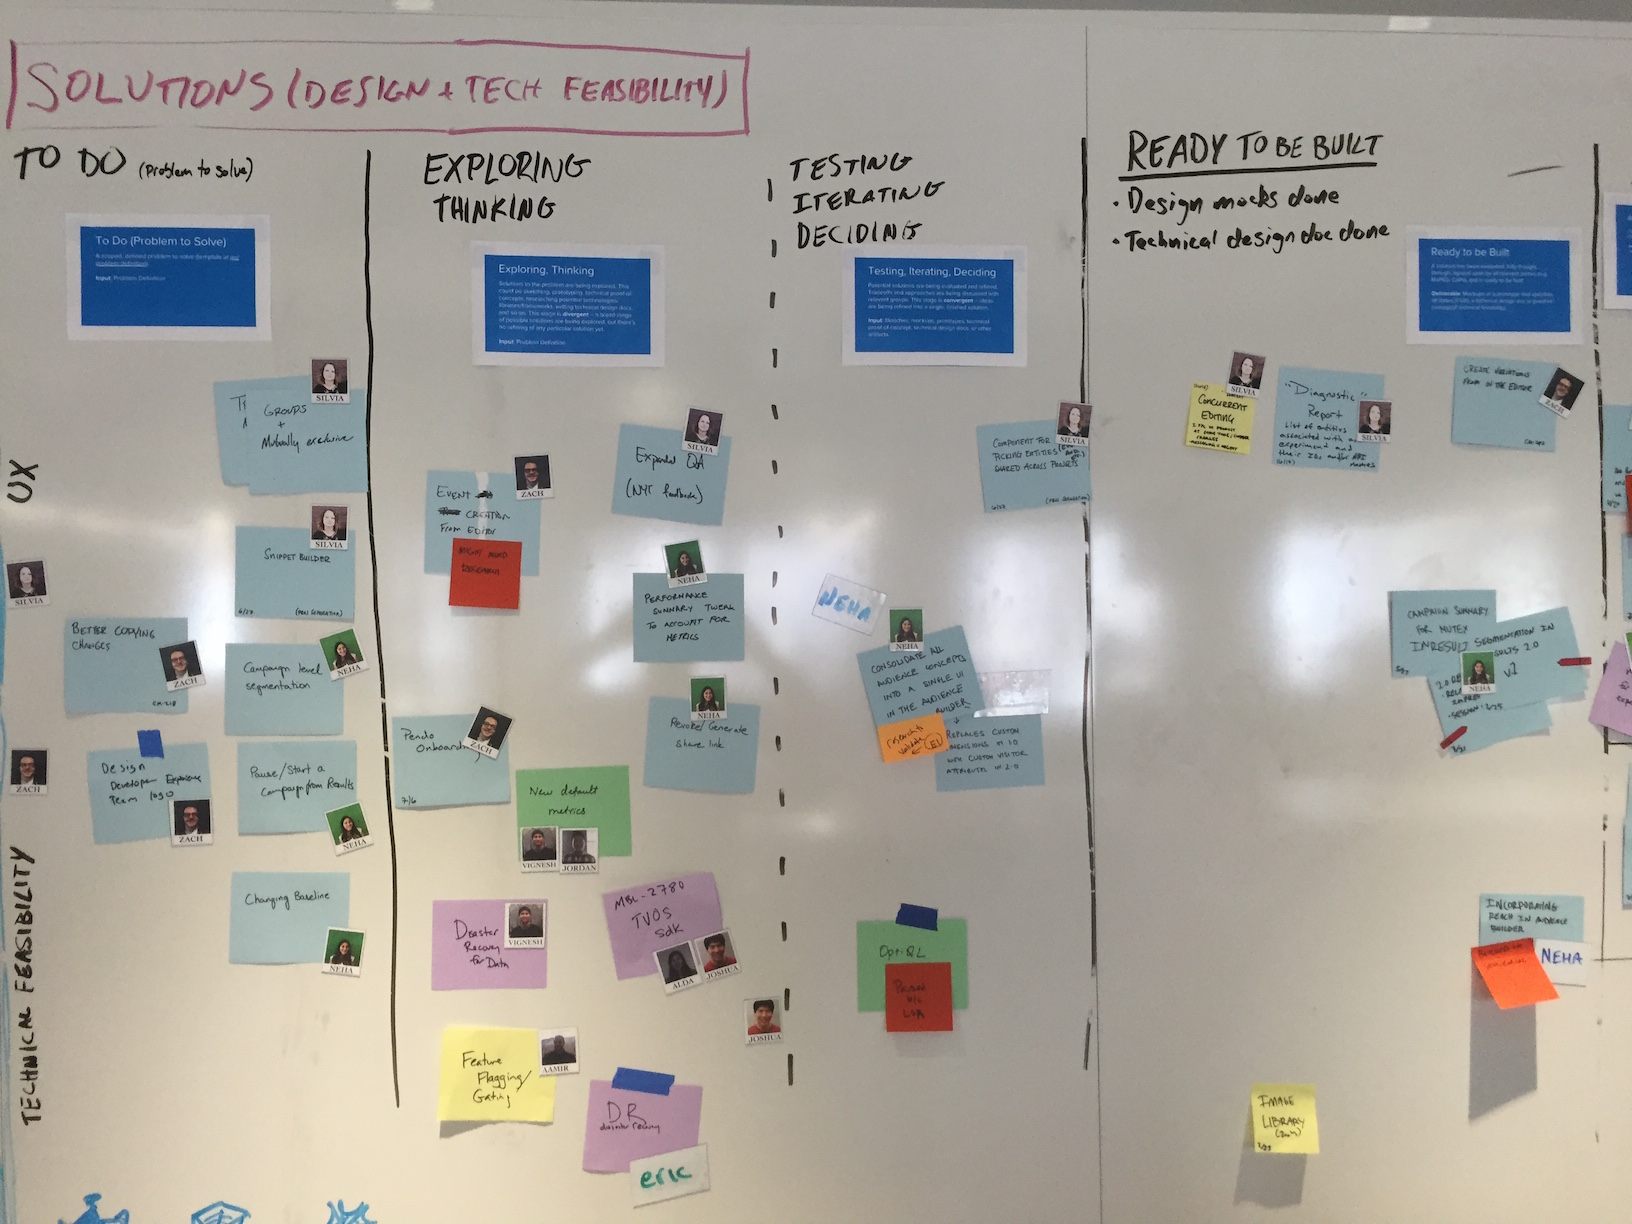 Solution Exploration kanban board